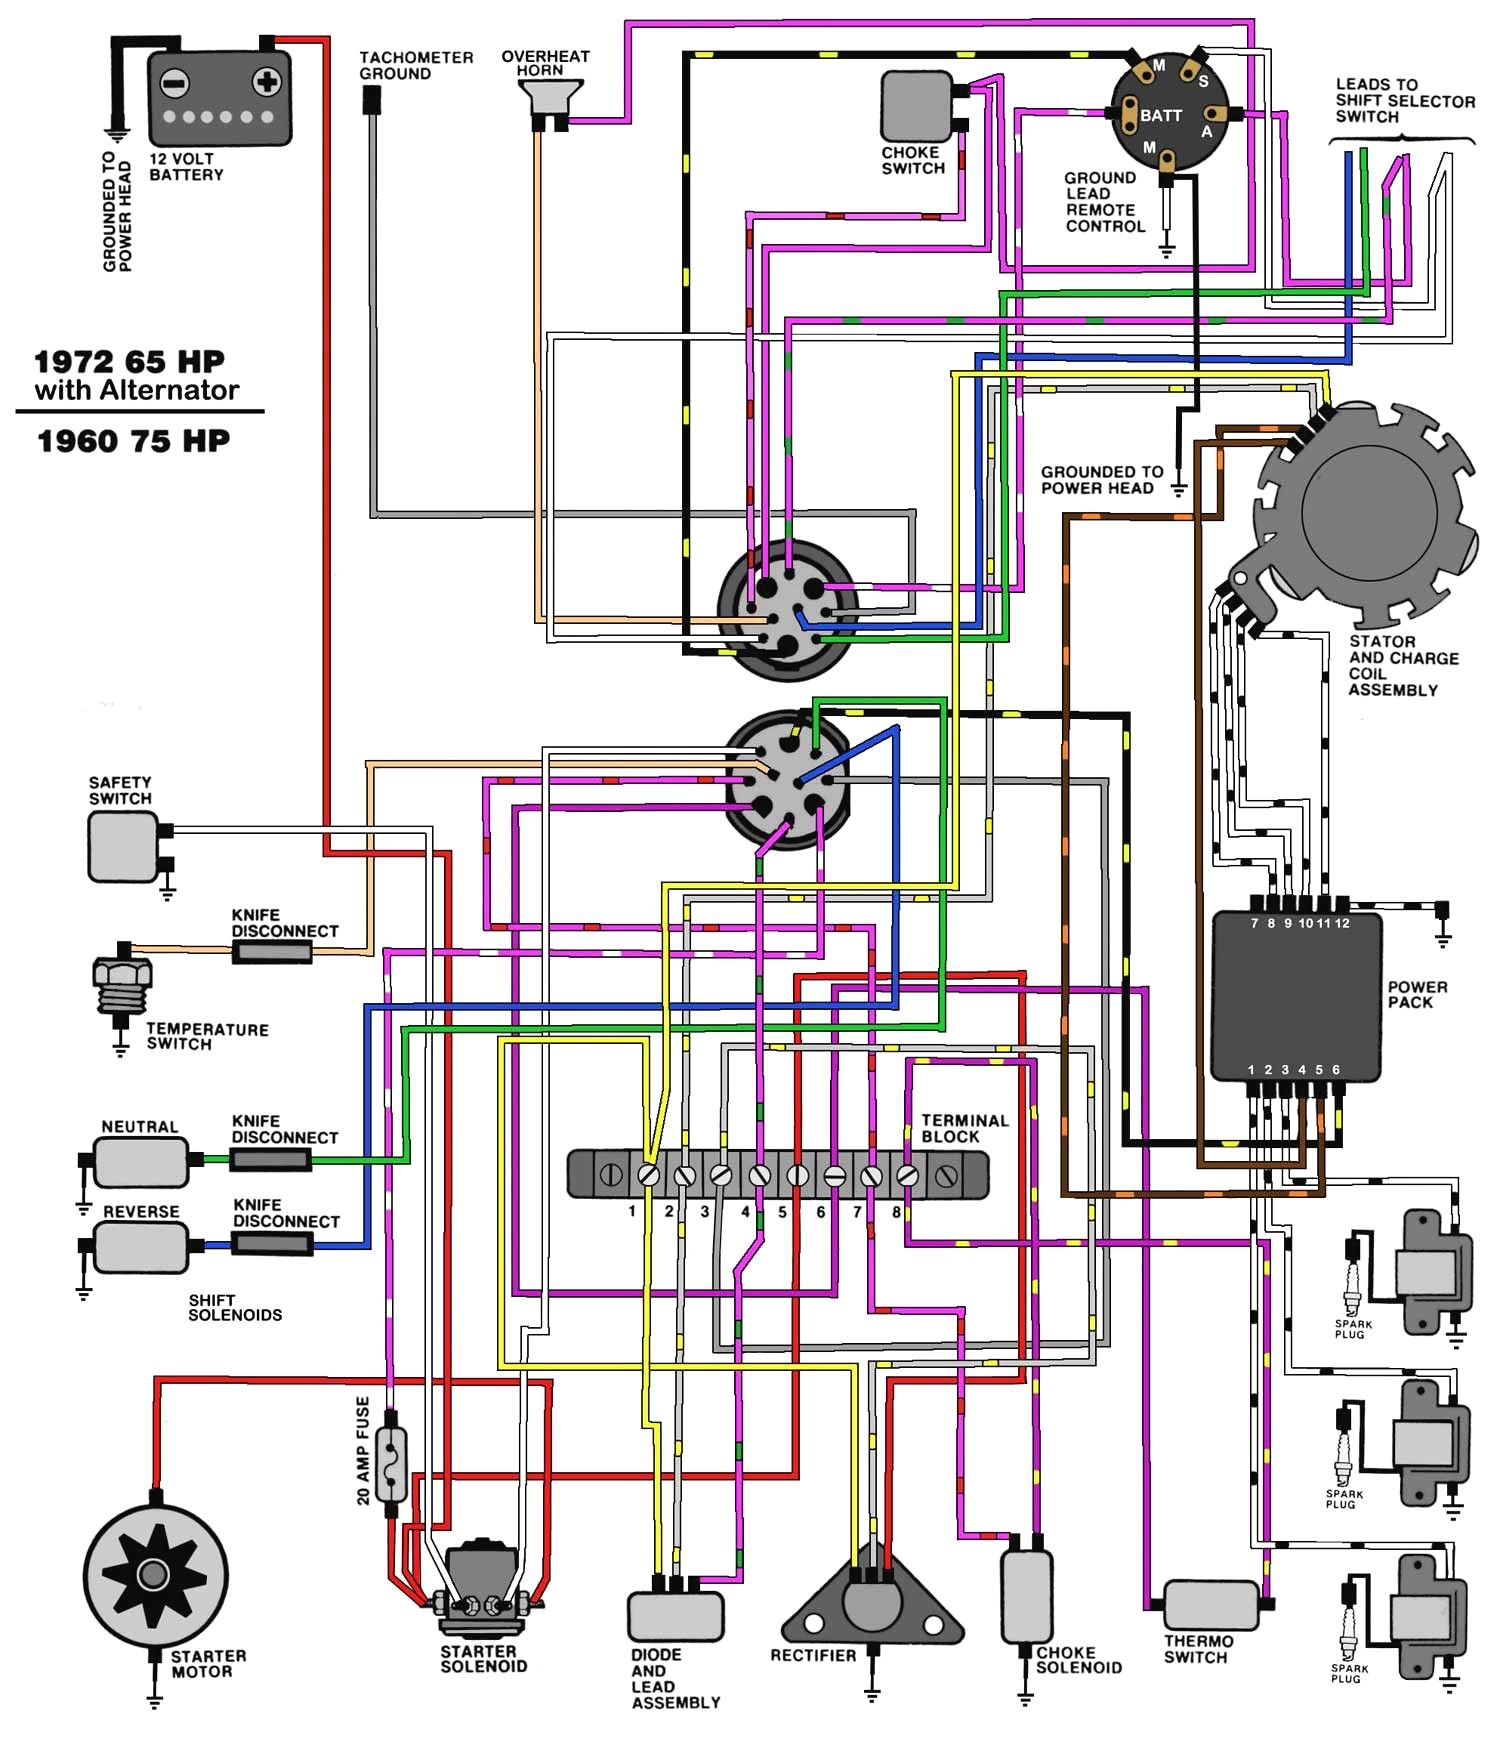 65 Hp Mercury Outboard Motor Wiring Diagram Diagrams